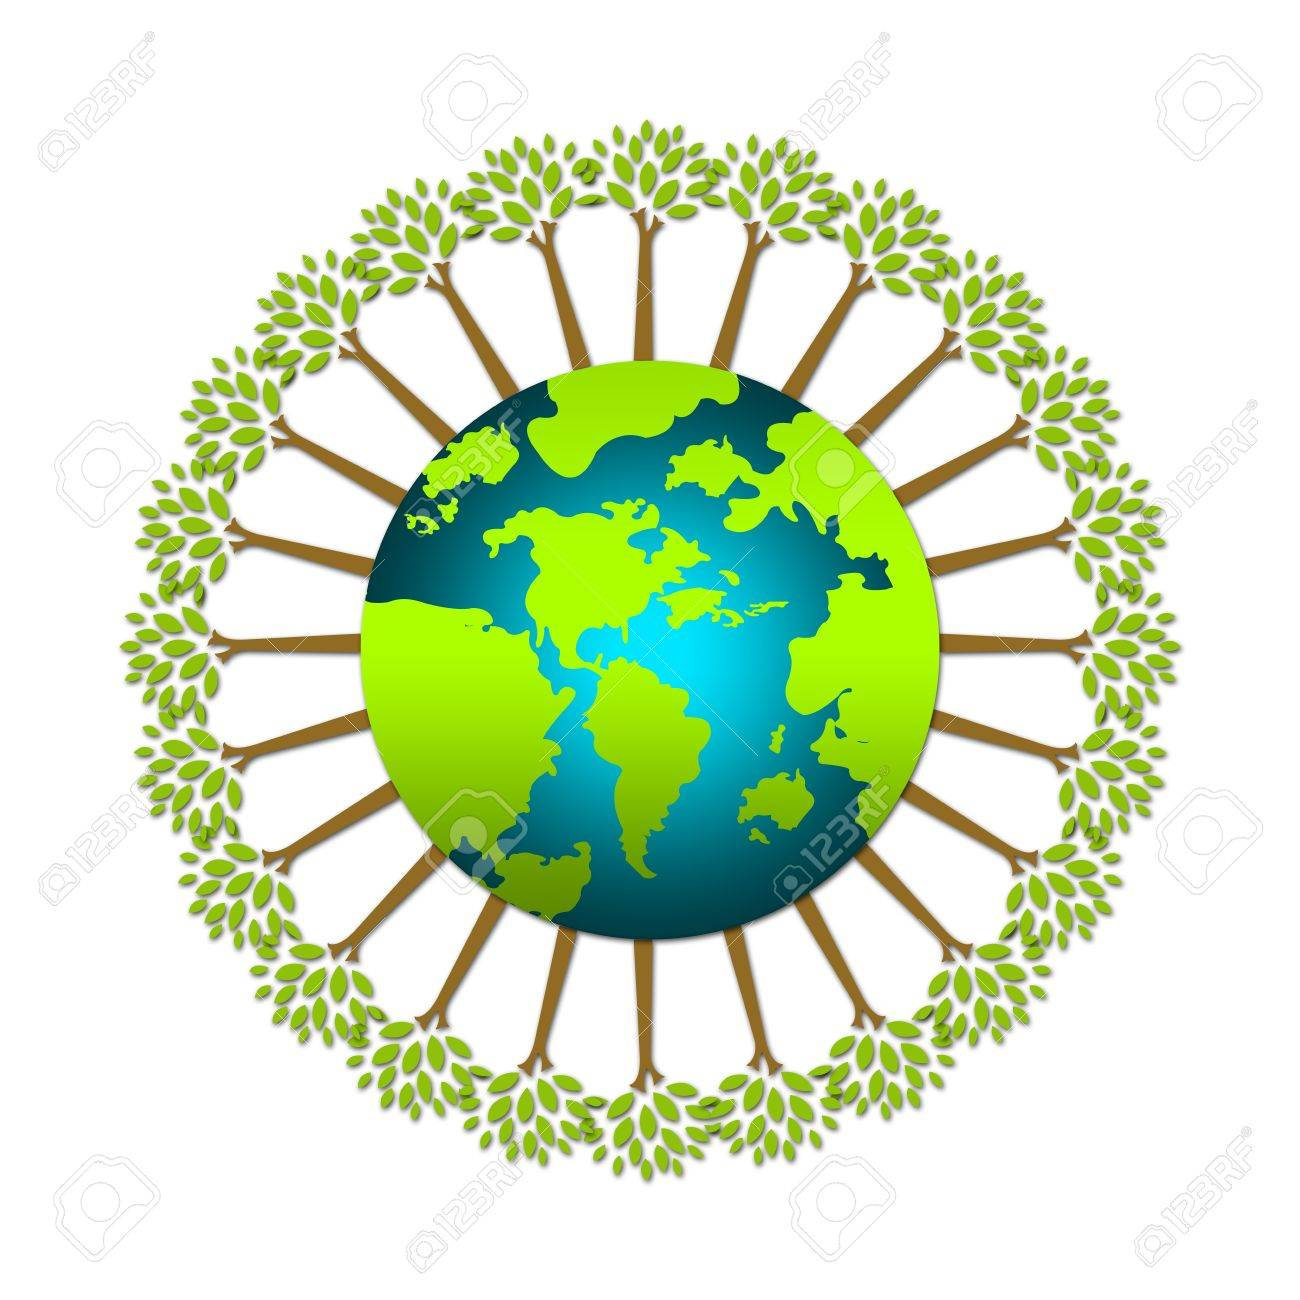 The Green Tree Stand Around The World For Save The Earth Or Stop